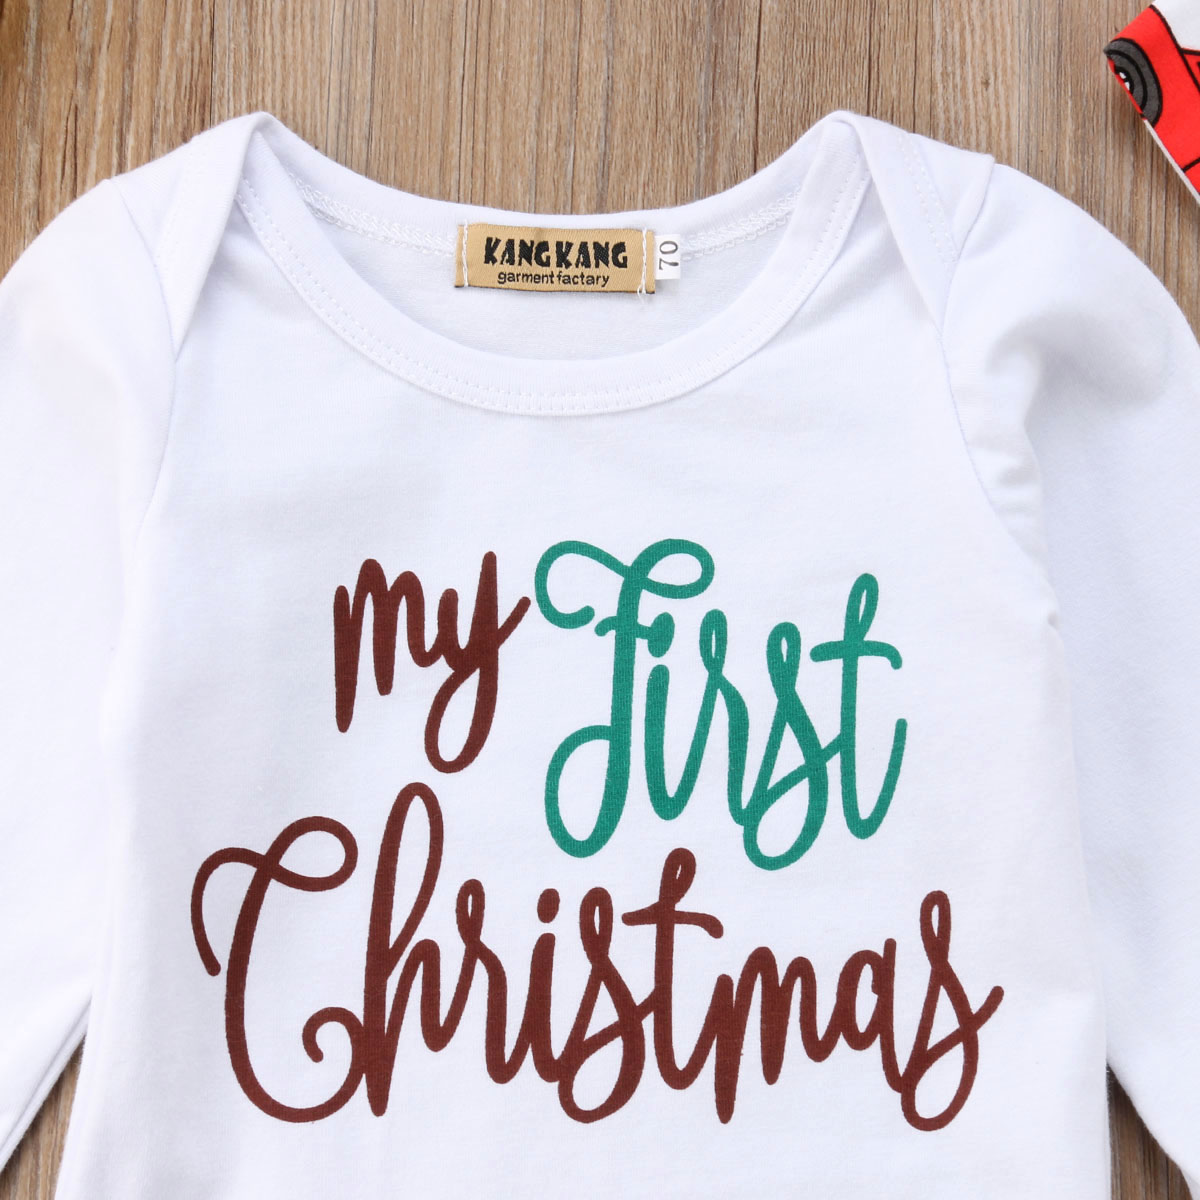 2bd9a42787f7 2019 Emmababy New Cute 3pcs Newborn Infant Baby Boy Girl Xmas Christmas  Clothes Romper Pants Set 0 18M-in Clothing Sets from Mother   Kids on  Aliexpress.com ...